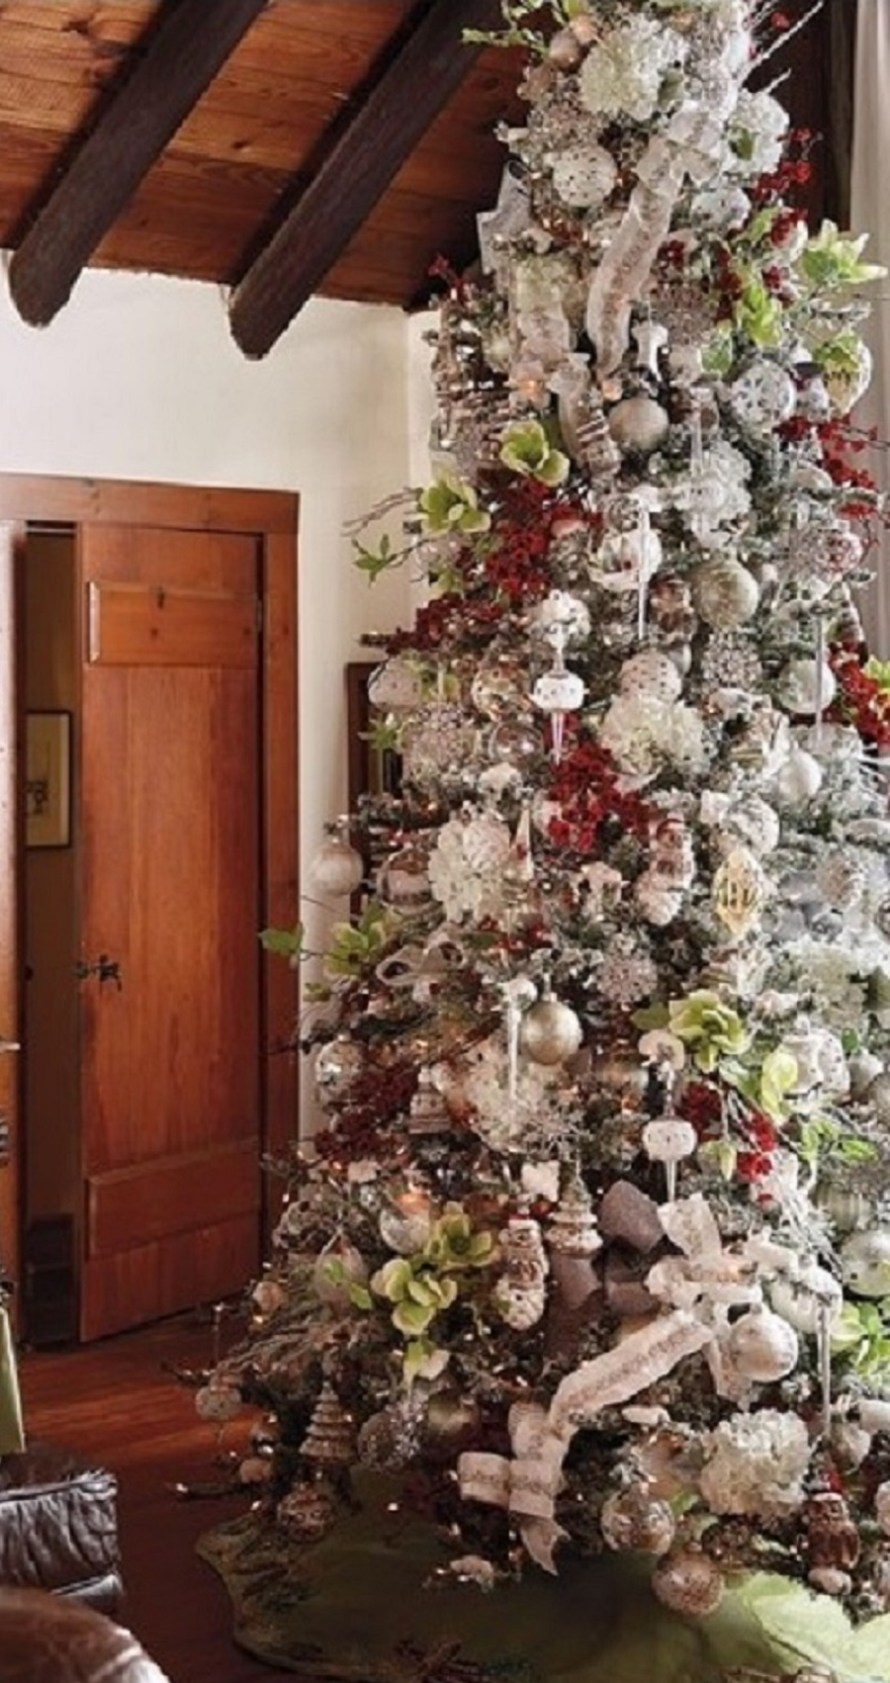 Christmas in Connecticut 60-Piece Ornaments Collection on Tree from Frontgate